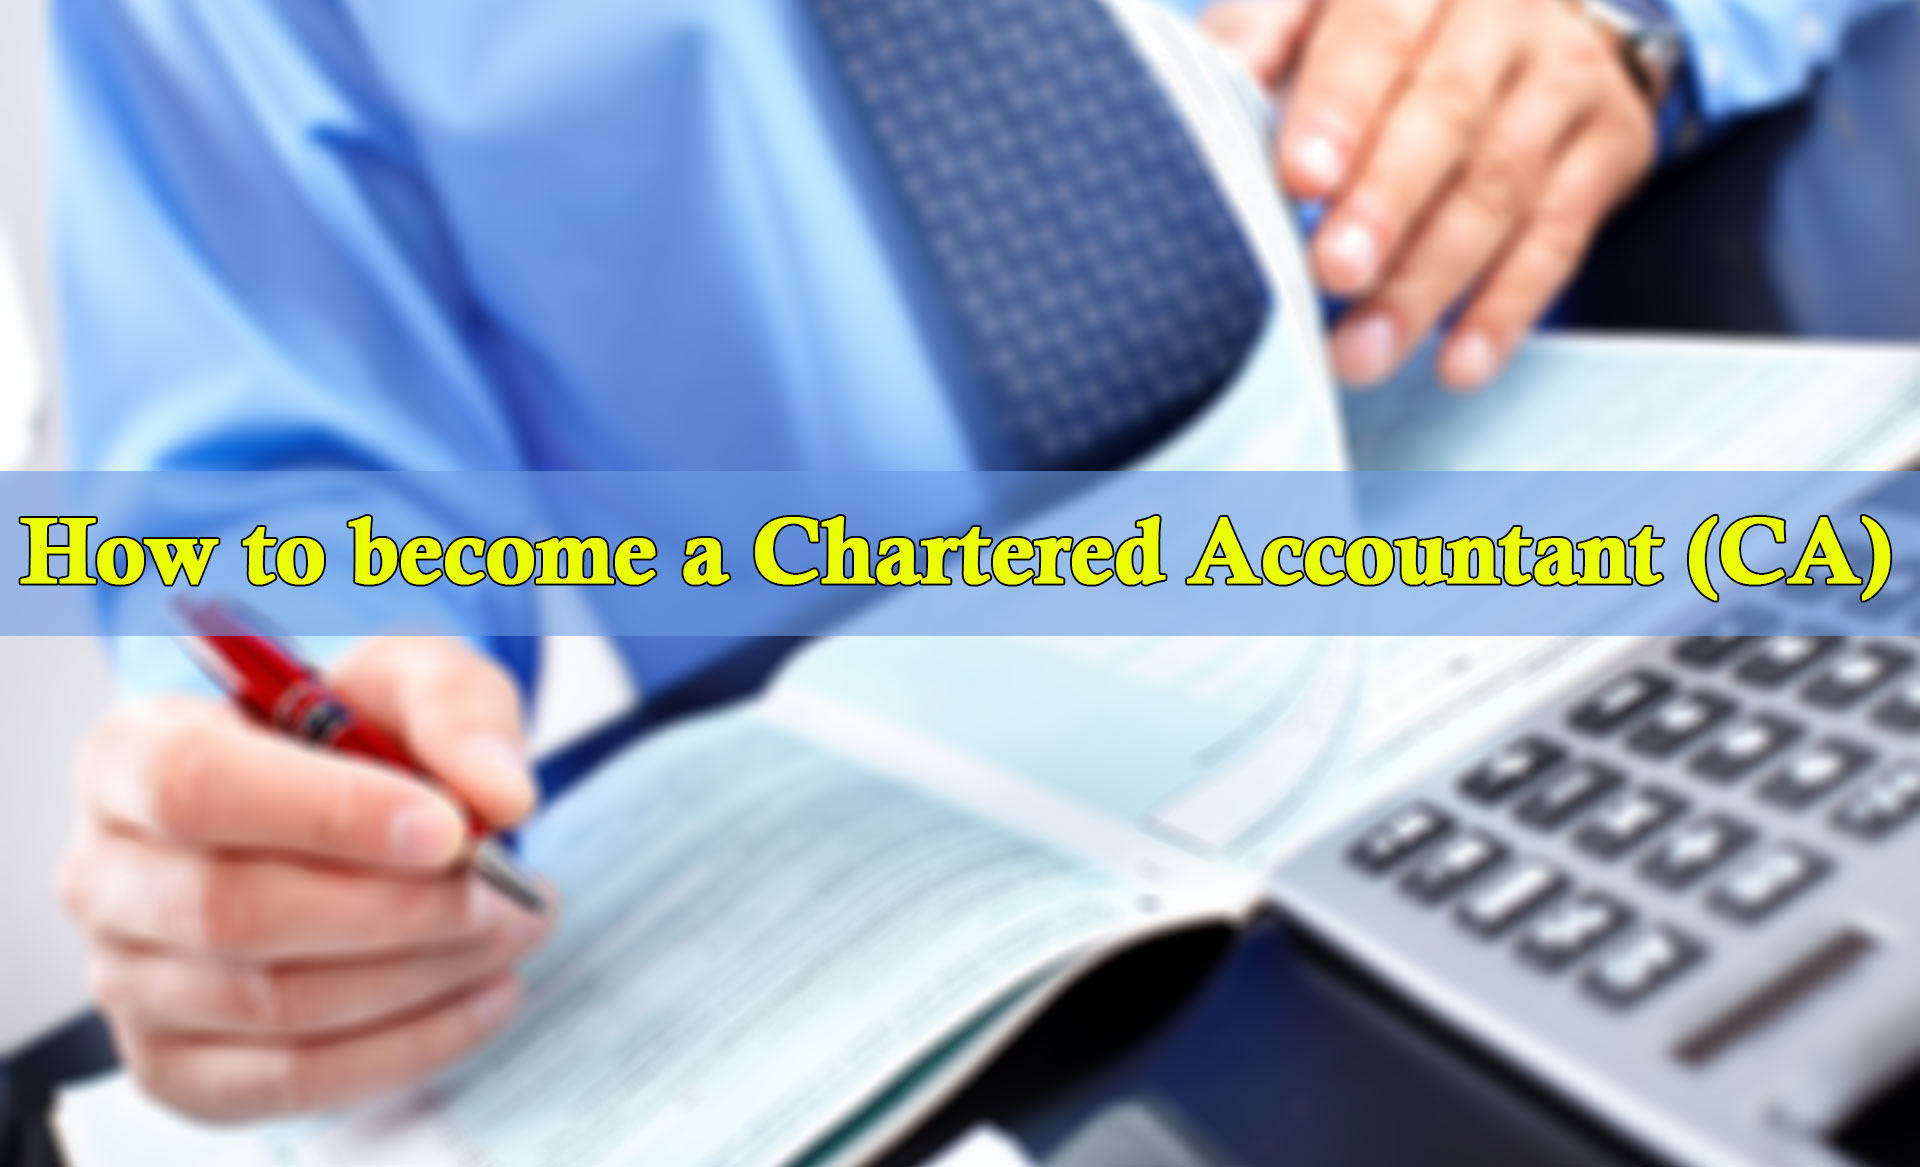 B8/1c/how-to-become-a-chartered-accountant-ca-.jpg